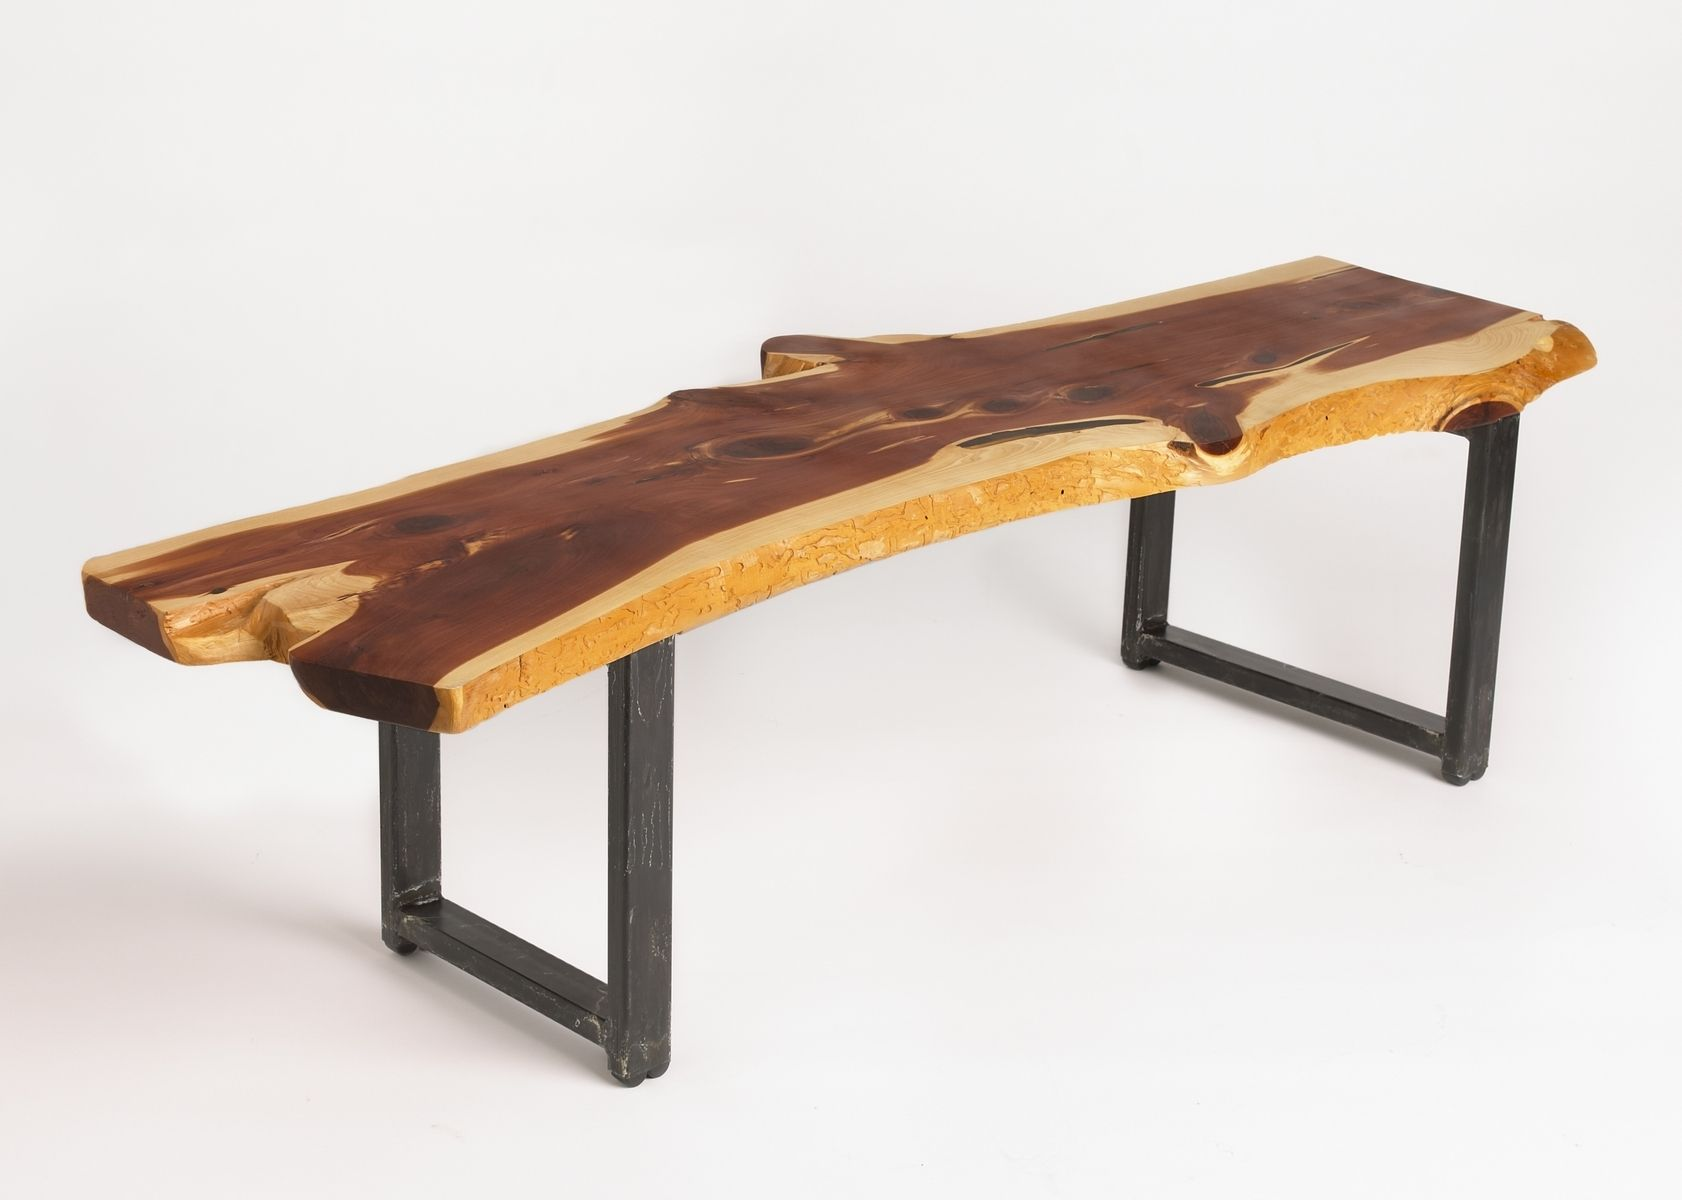 Custom Live Edge Cedar Coffee Table by Russ Connell Metal  : 80542504637 from www.custommade.com size 1682 x 1200 jpeg 84kB